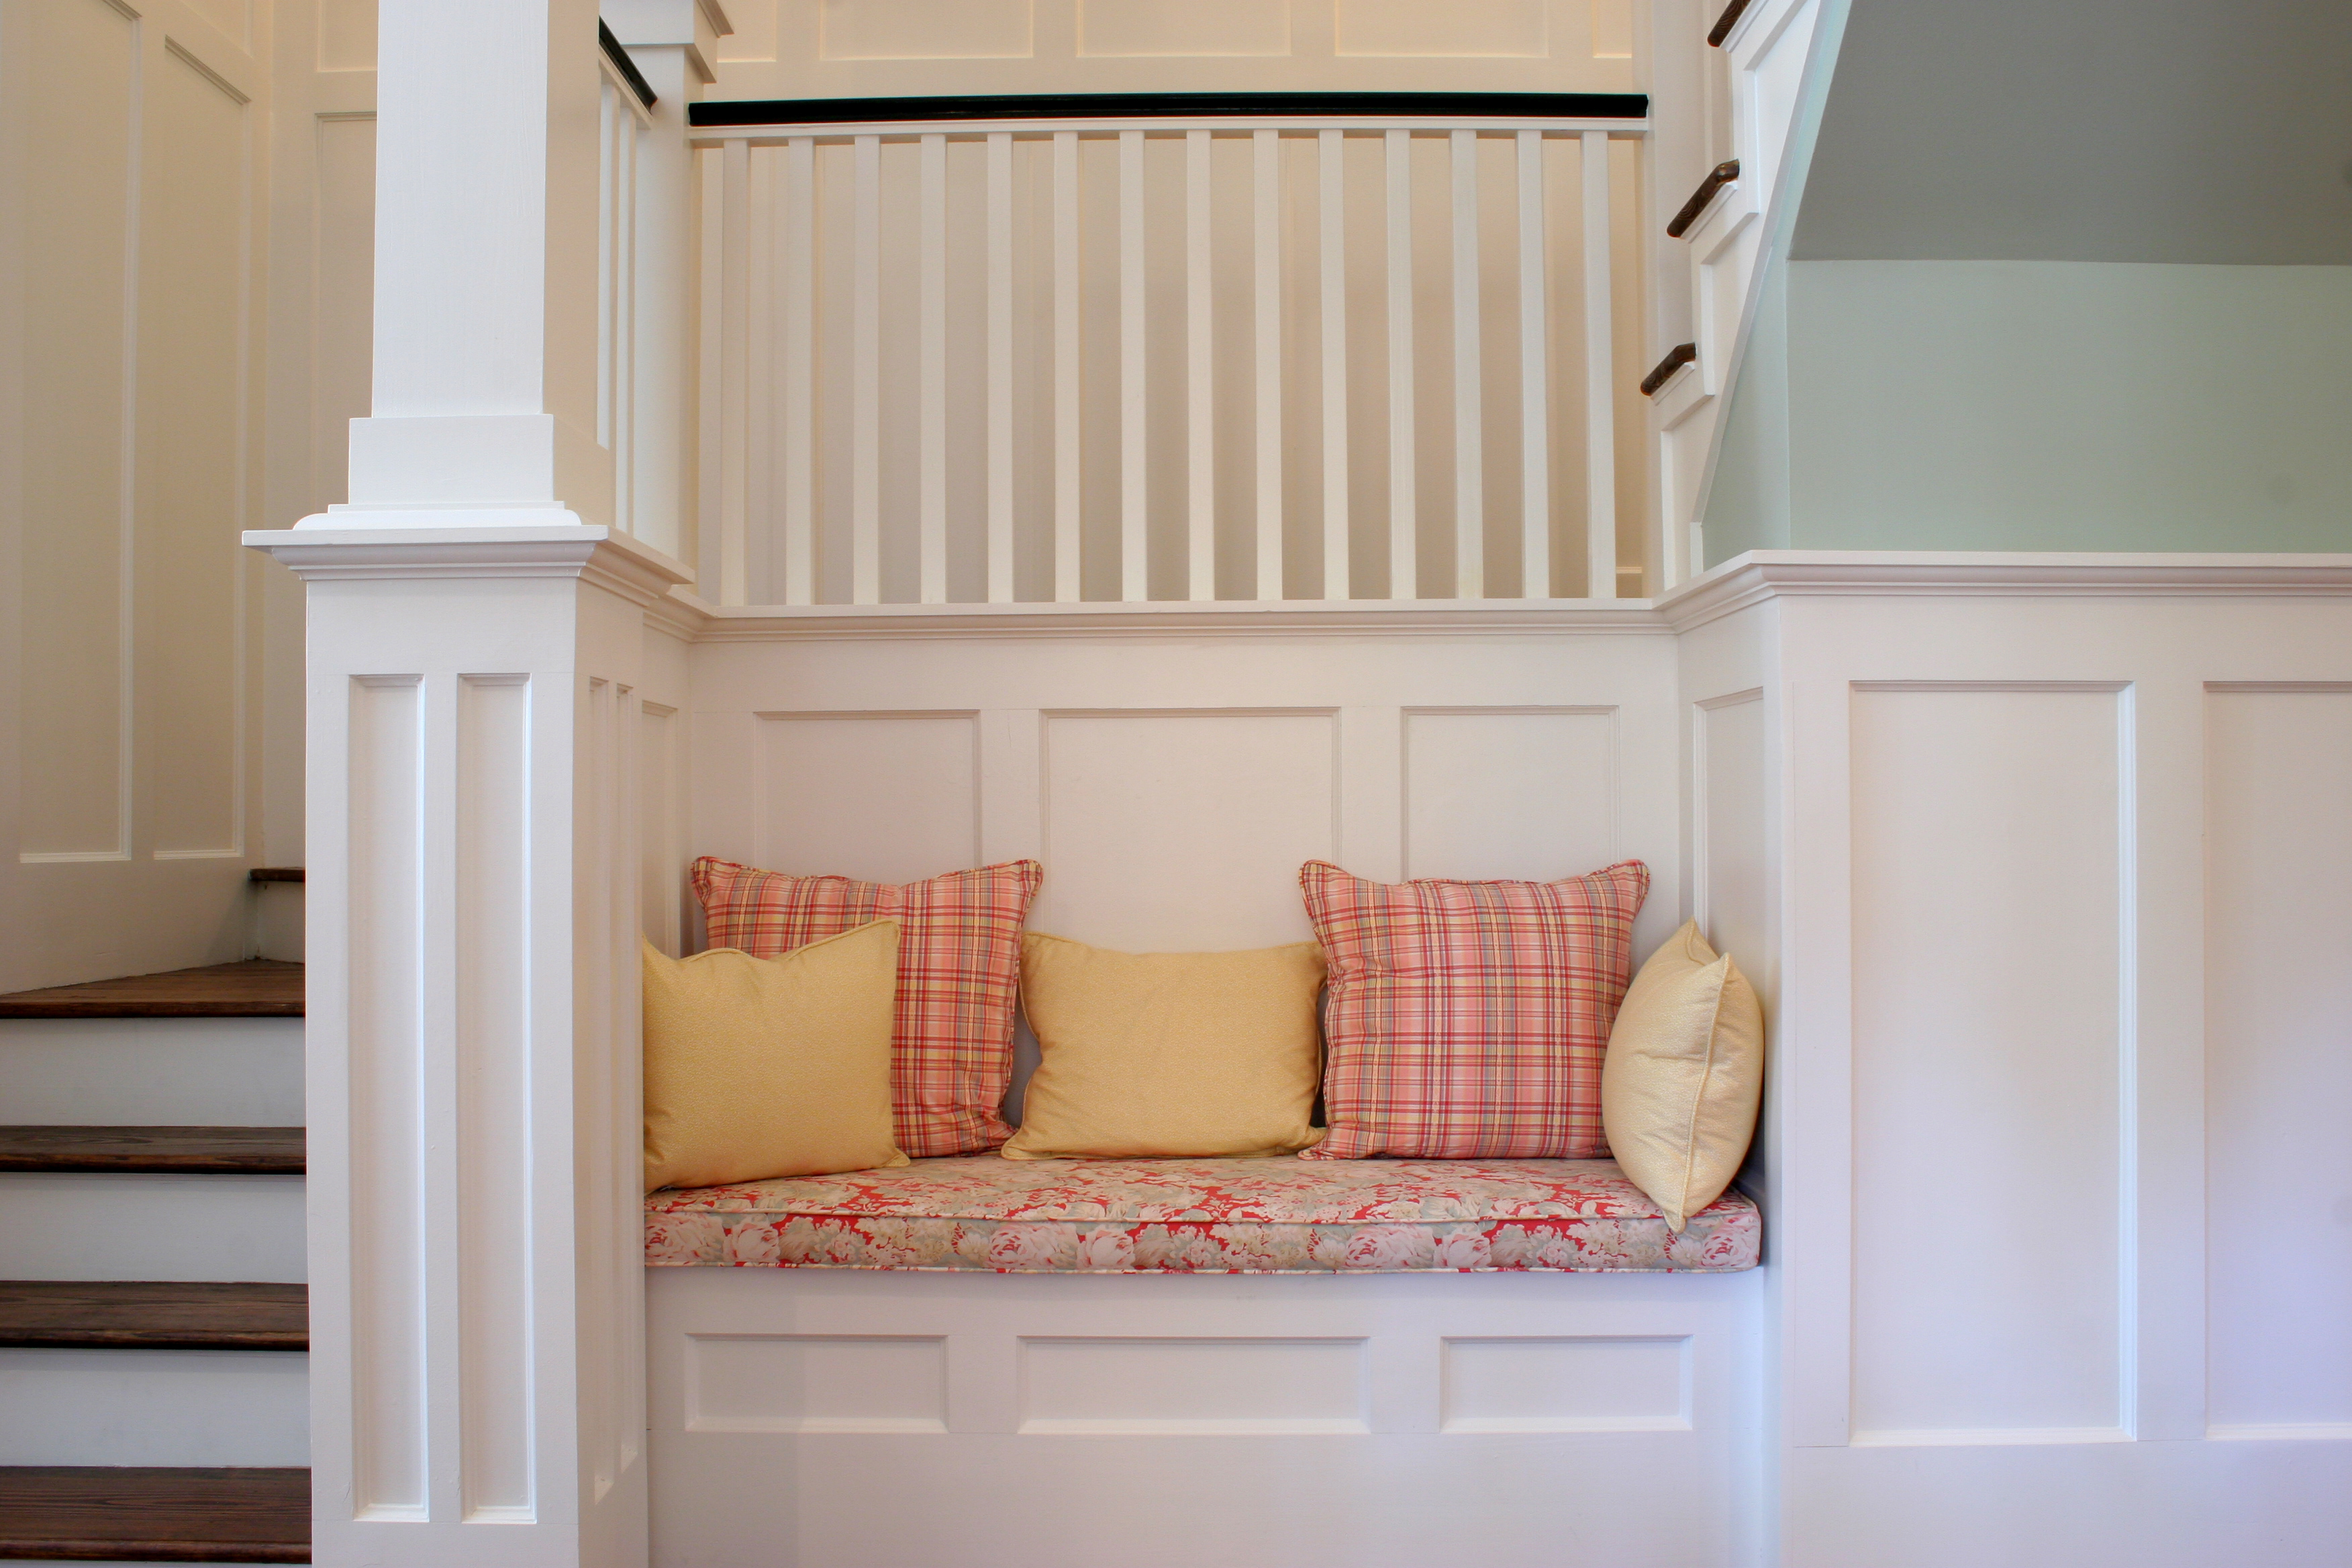 Chair Rail Wainscotting And Beadboard Crown And Trim By Design